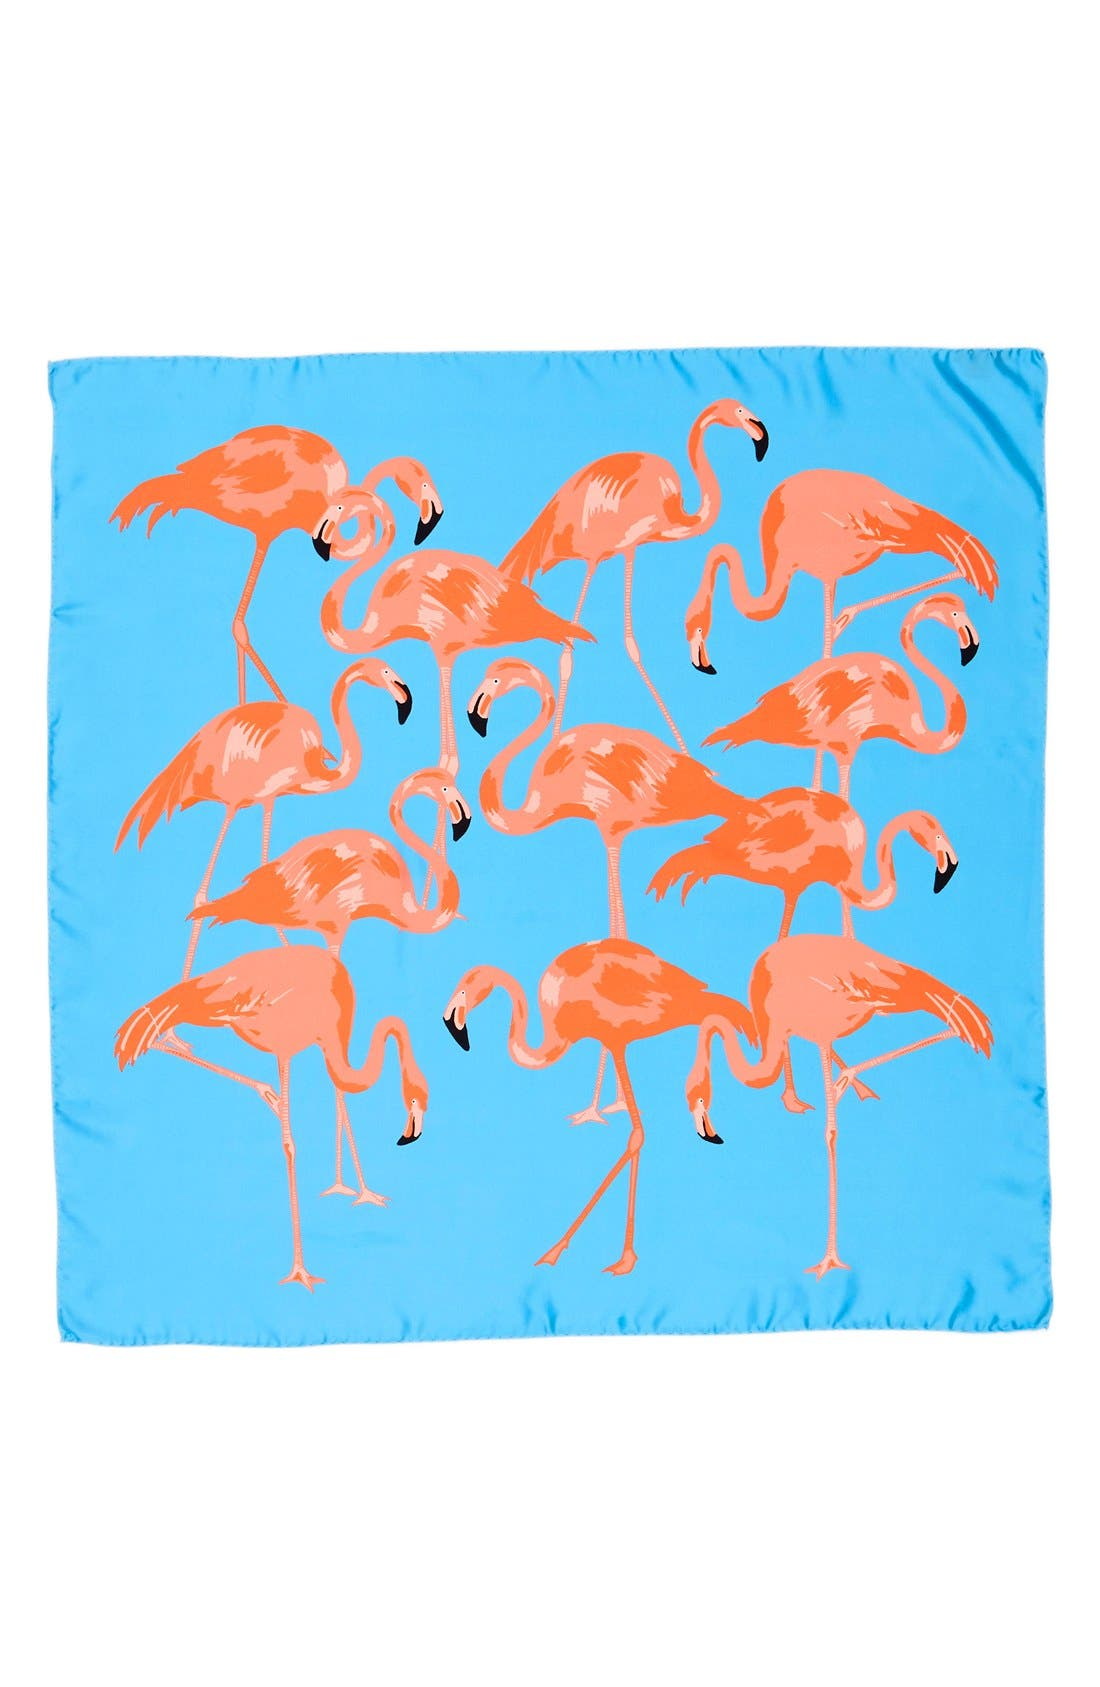 'Flamingo Flock' Silk Scarf,                             Alternate thumbnail 2, color,                             400